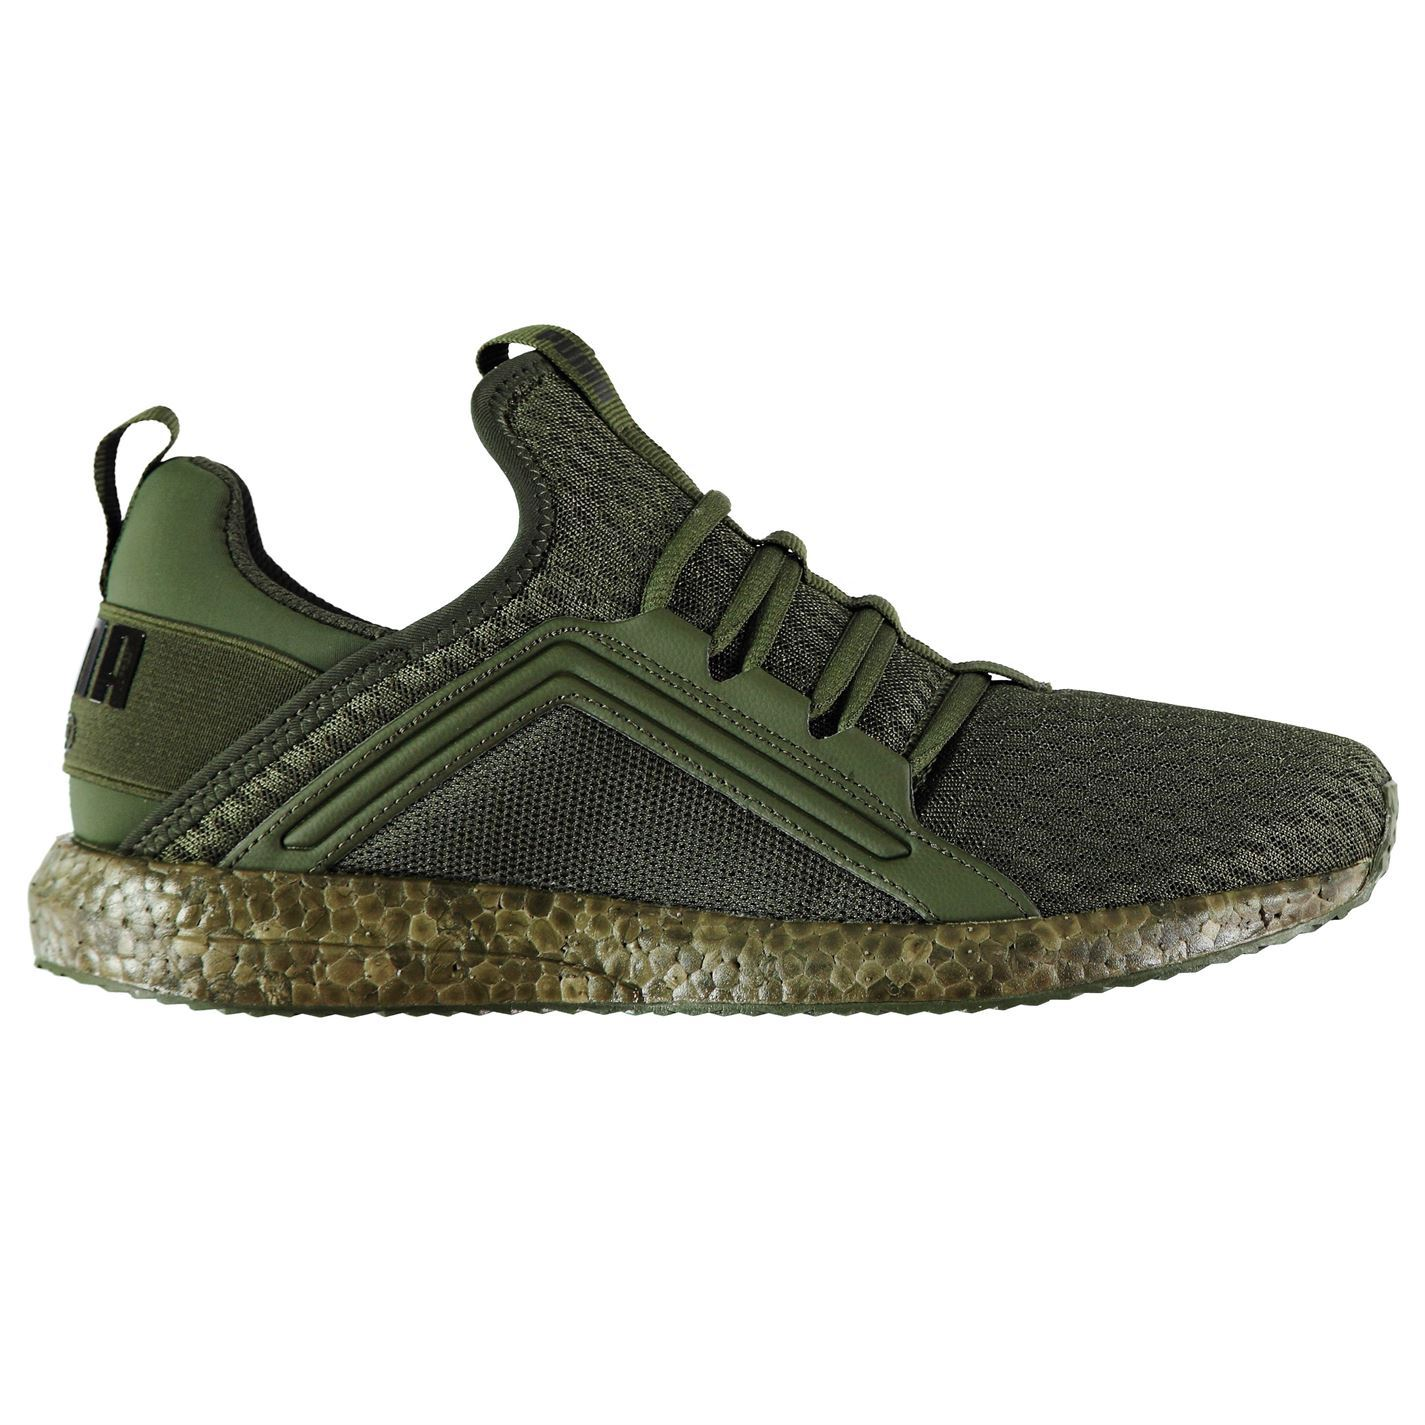 18124a2681fe czech puma mega nrgy running shoes mens green black jogging trainers  sneakers d1d4b 4a23e